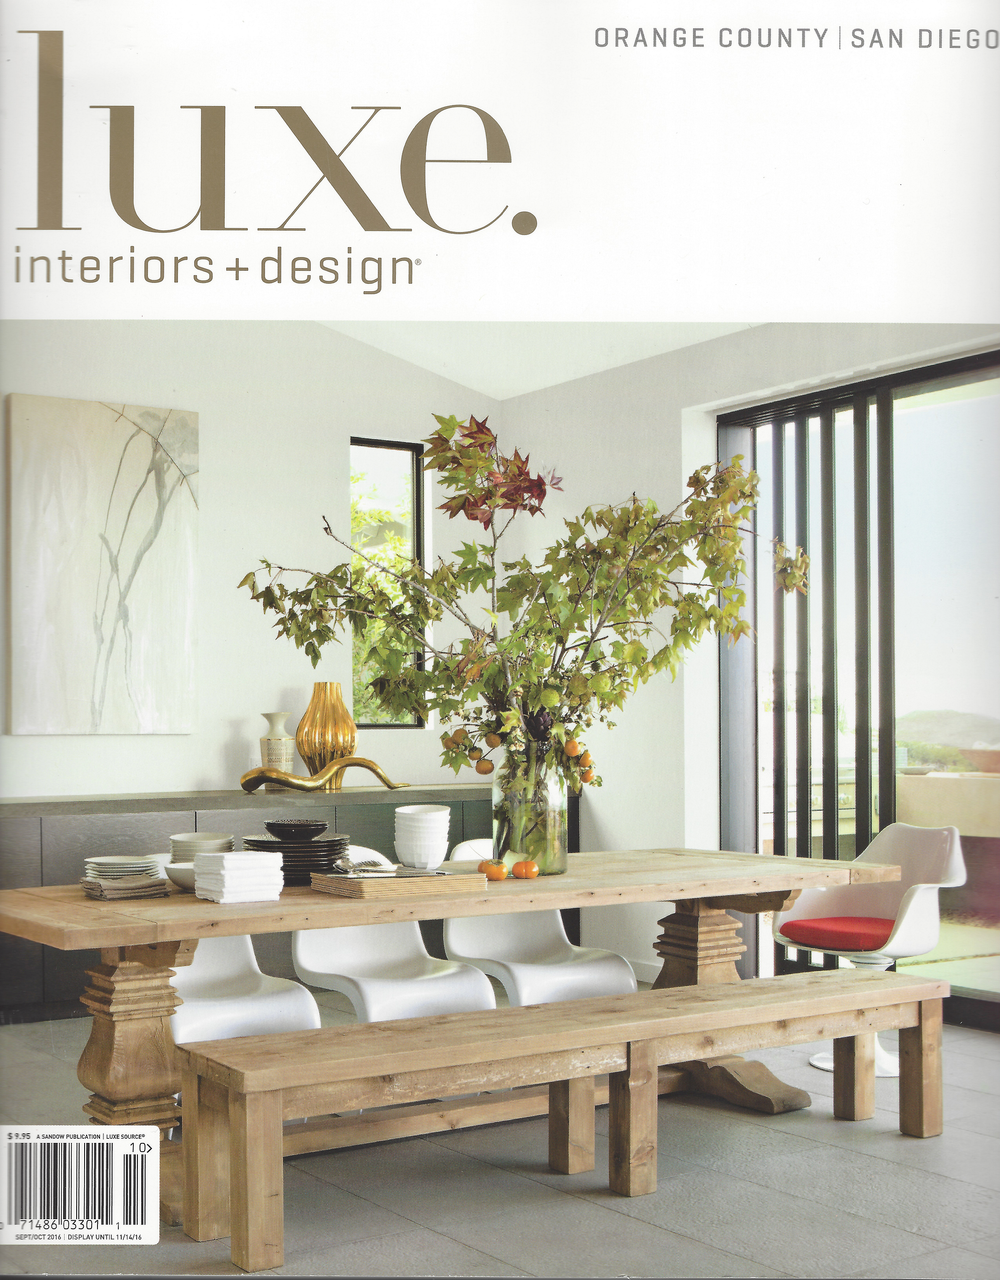 luxe interiors design magazine san diego orange county - Luxe Interiors And Design Magazine